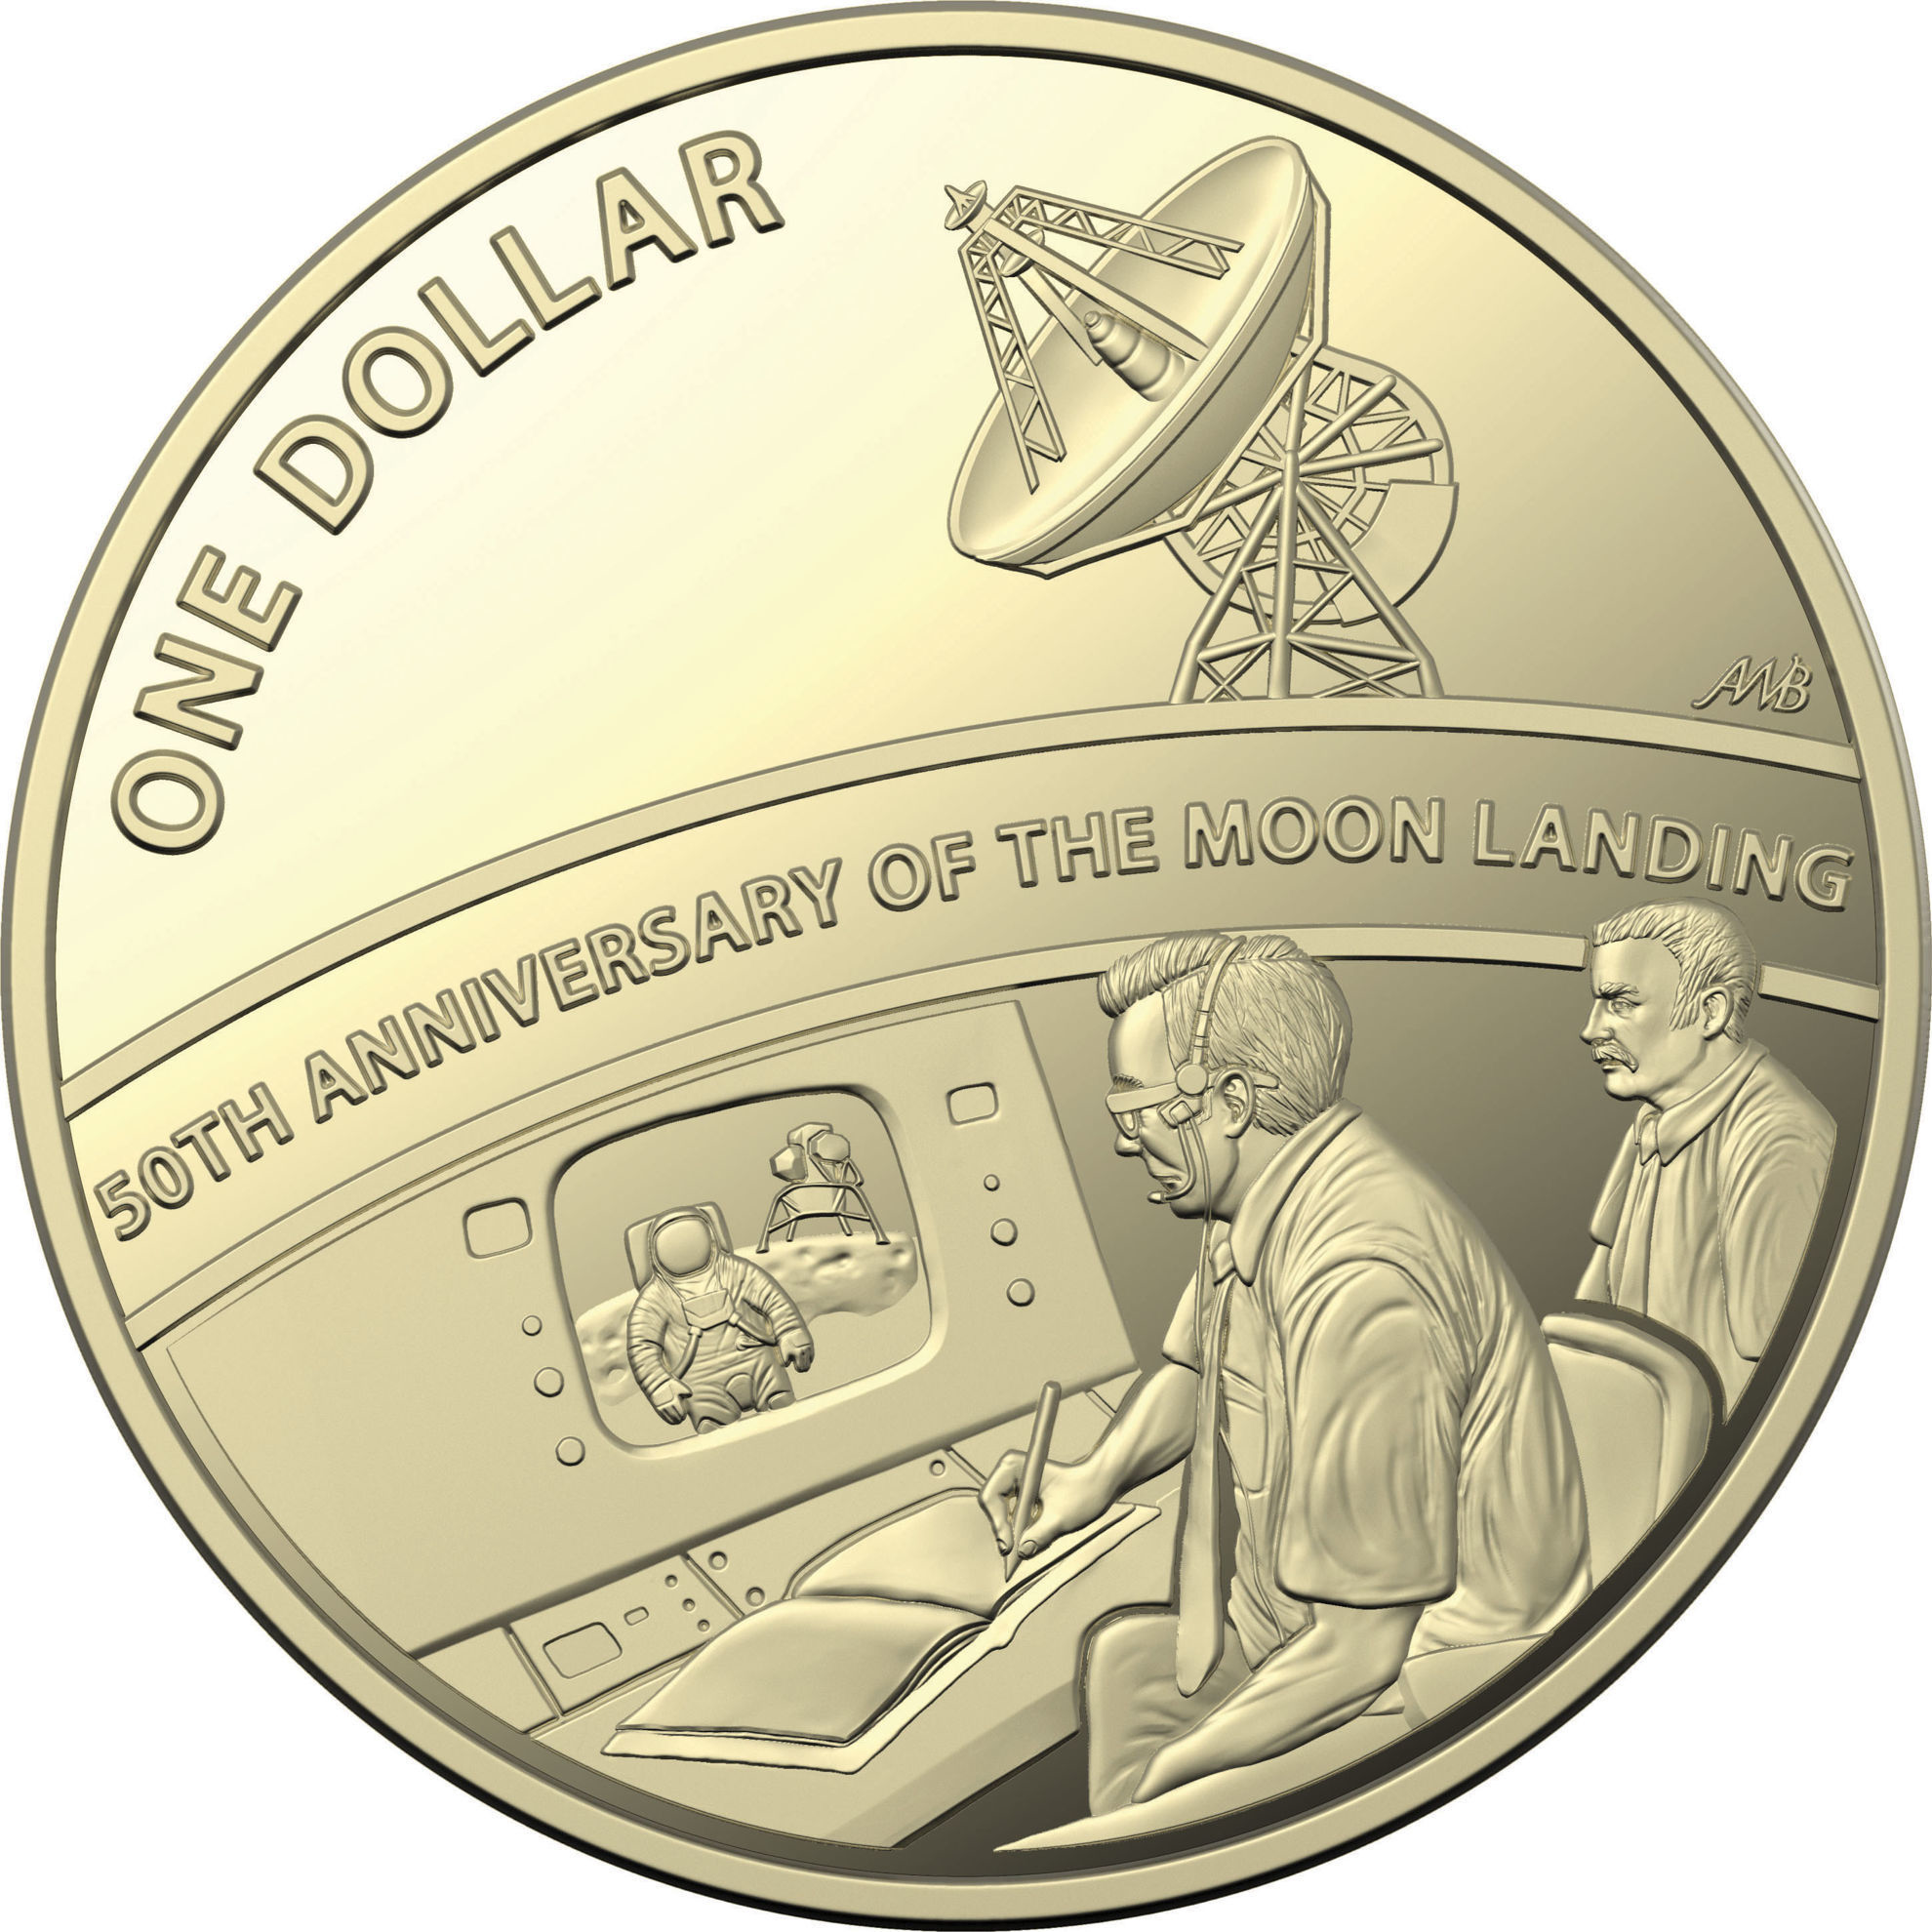 One Dollar 2019 Moon Landing: Photo 50th Anniversary of the Moon Landing - $1 Proof